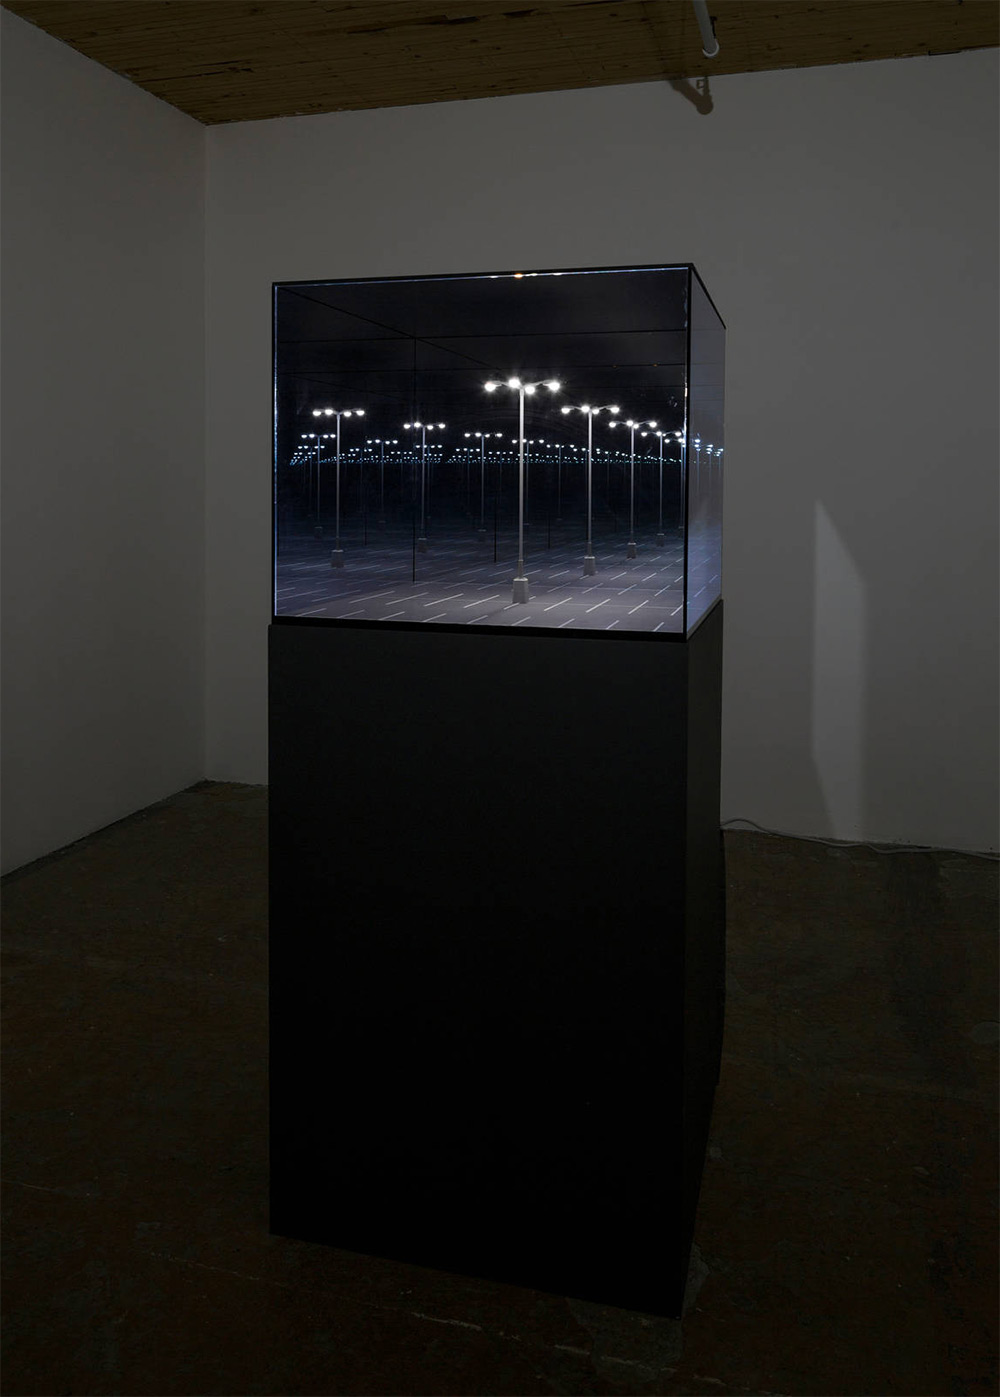 Guillaume Lachapelle Mirrored Diorama 1